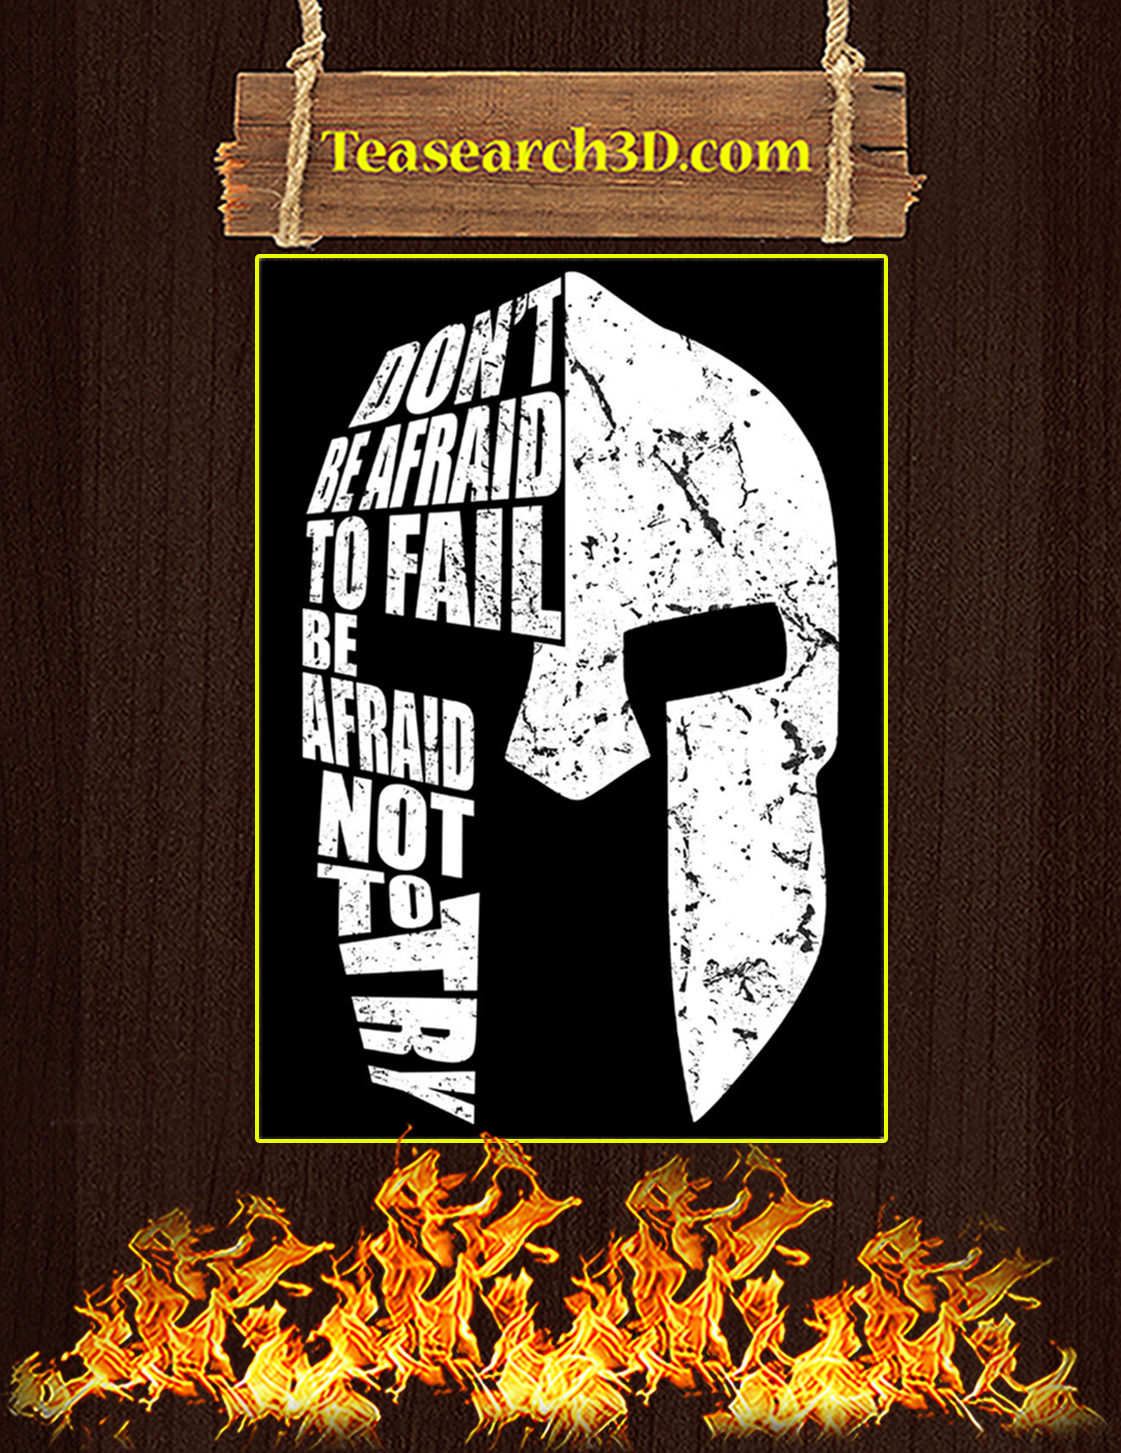 Spartan don't be afraid to fail be afraid not to try poster A3